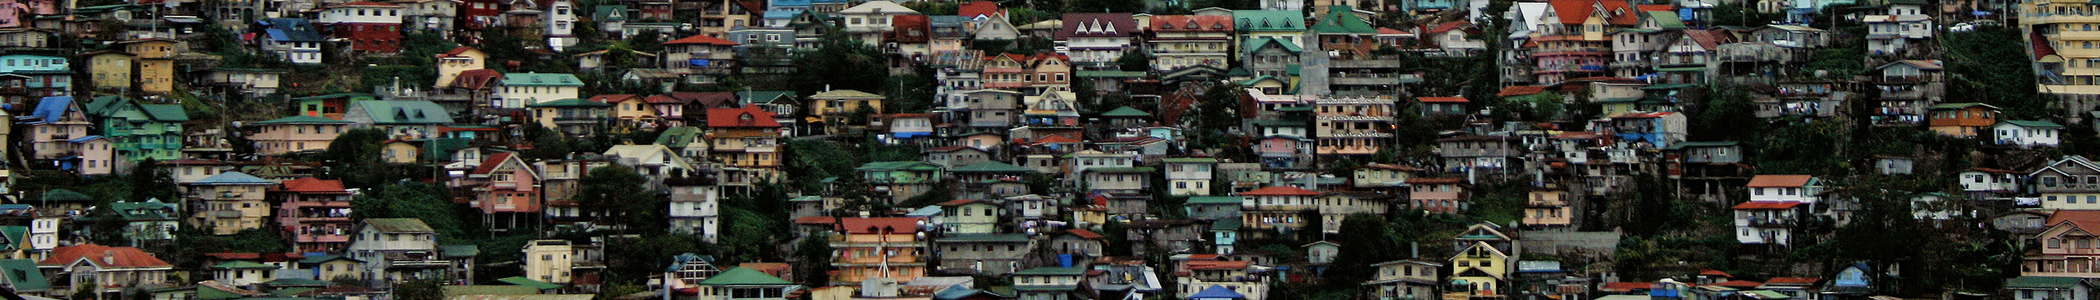 reaction paper about baguio city From the fair winds of the self-proclaimed true north, ilocos norte boasts of graceful  6 ½ hours from tuguegarao and 5 hours away from baguio city.